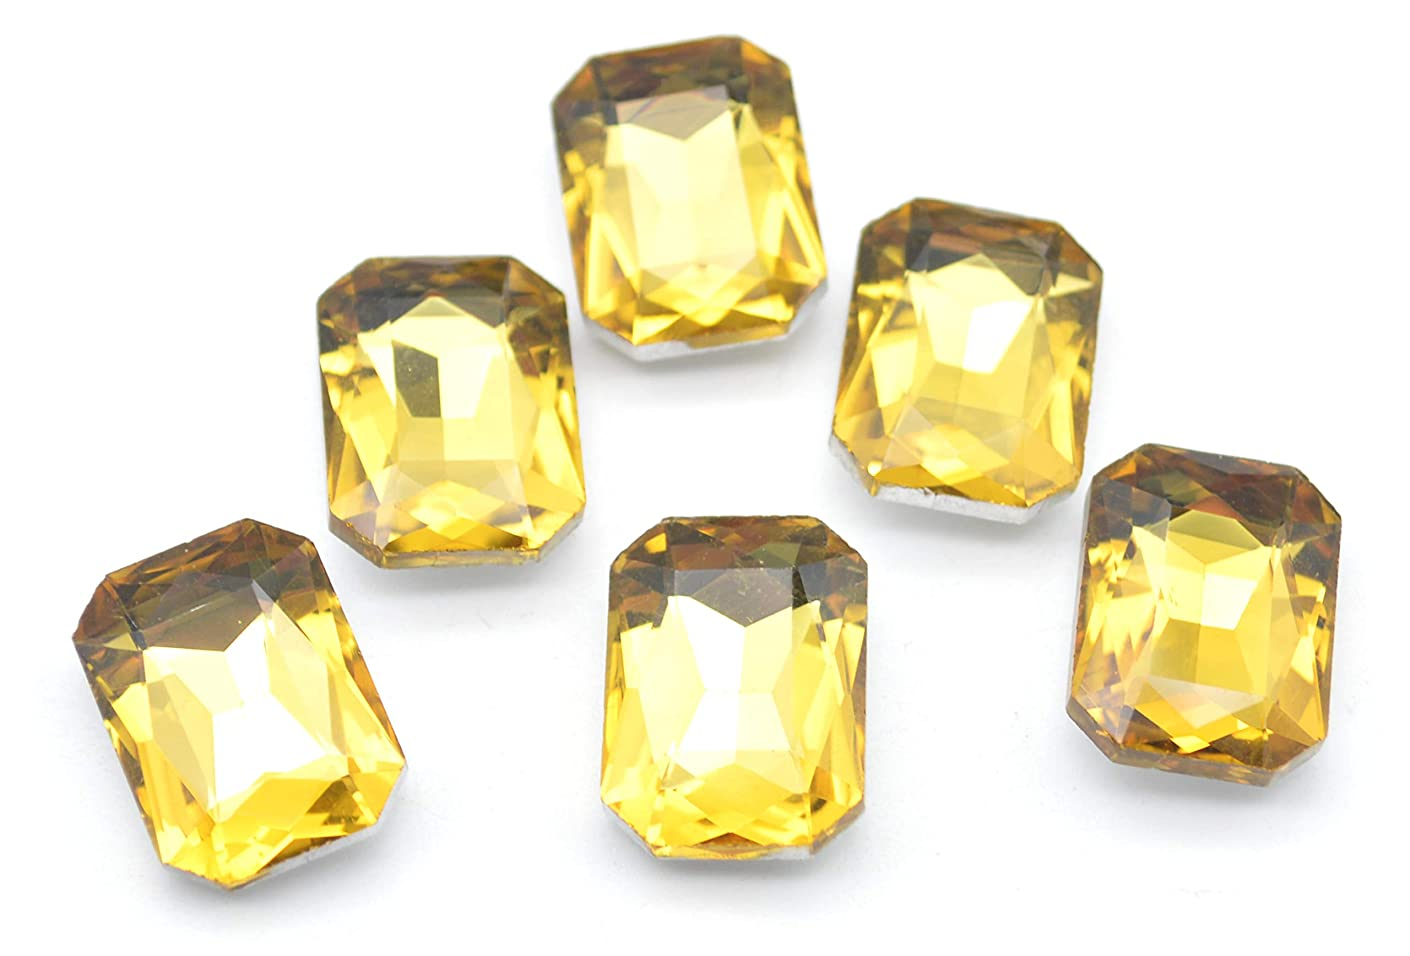 Catotrem Glass Diamante Faceted Octagon Rectangle Rhinestone Pointback Stone for Arts Crafts 13X18mm 50Pcs(Yellow)